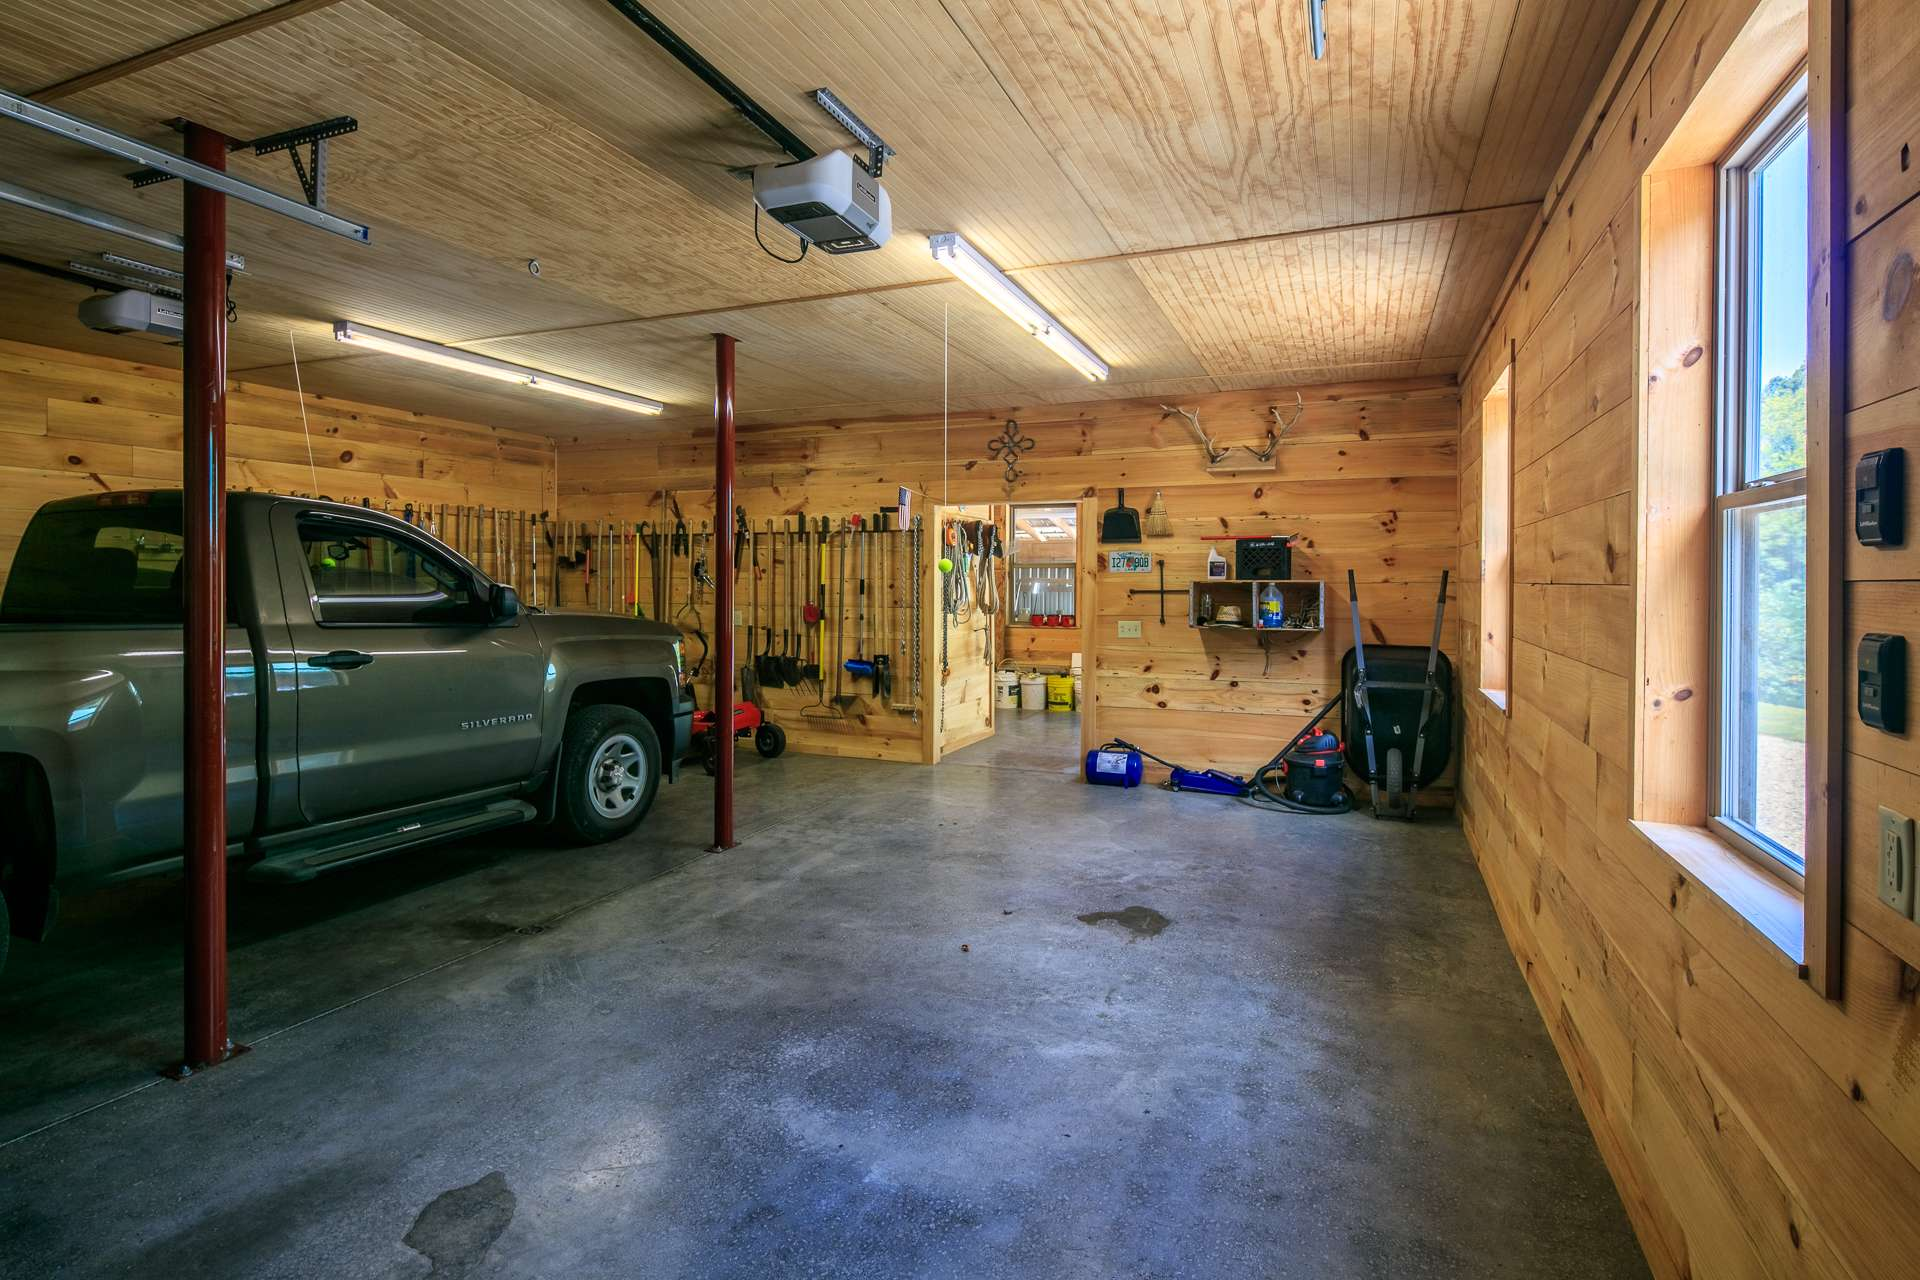 Not only does the garage offer plenty of space for vehicles, it also features a nice workshop area.